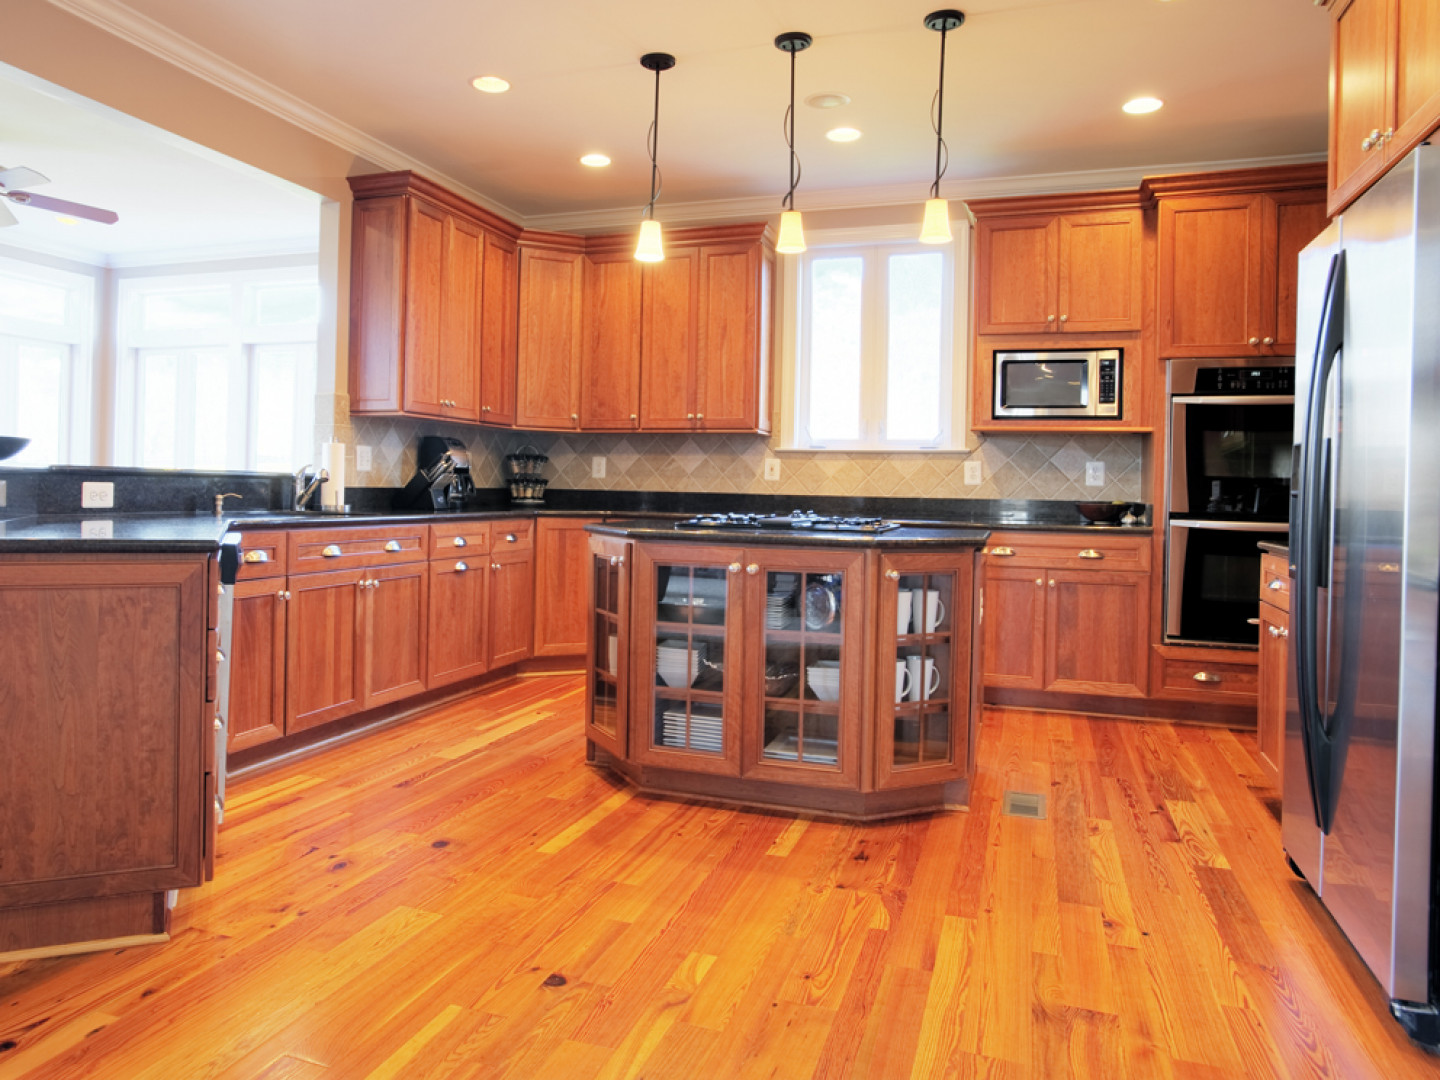 4 ways to improve your kitchen with a remodel